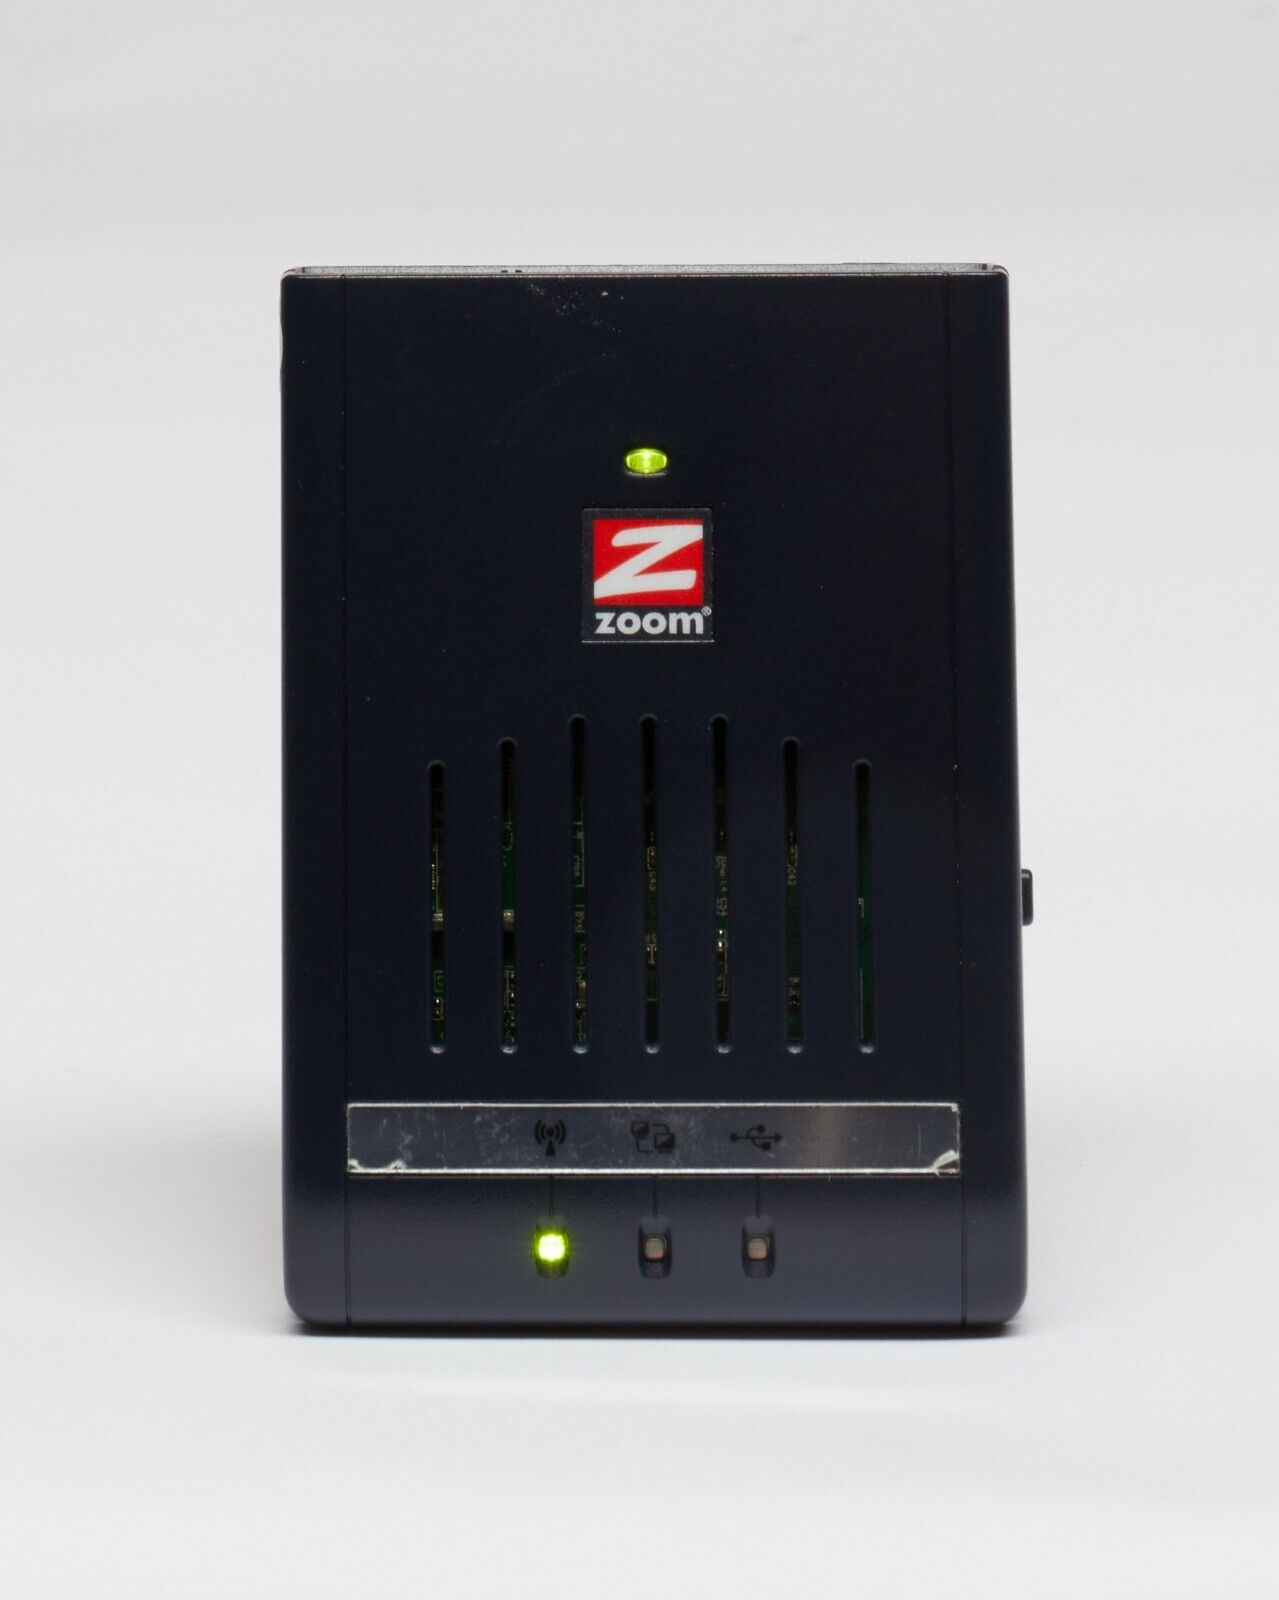 Zoom 4506 3G Wireless-N Travel Router. Battery Powered or AC